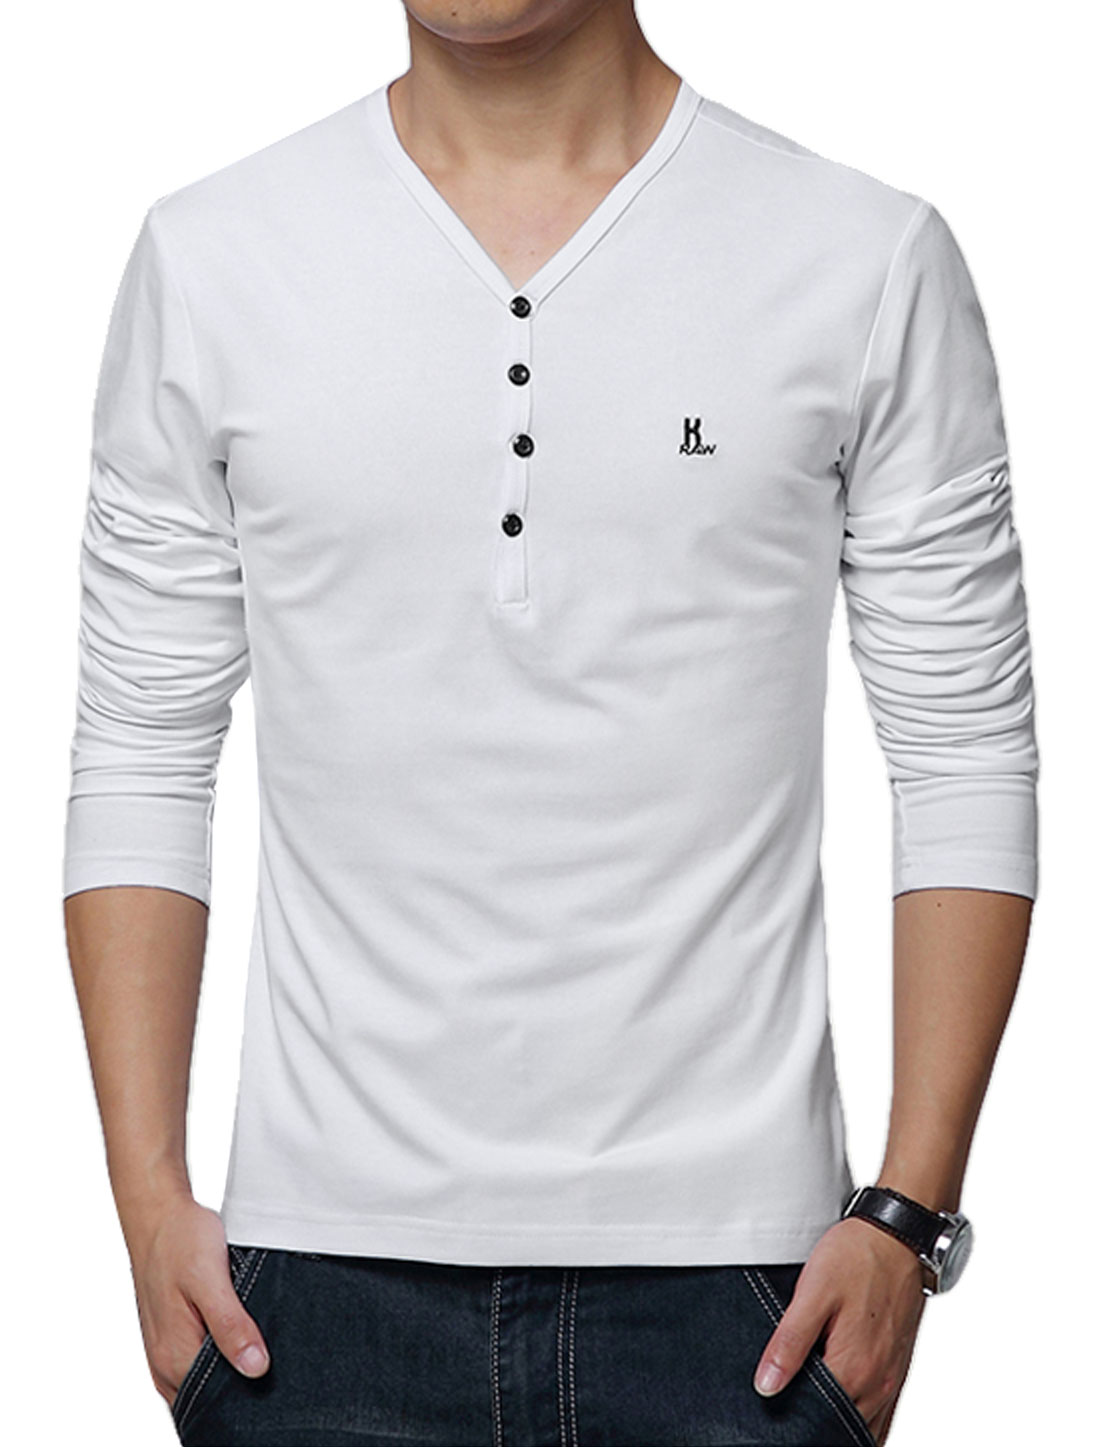 Men V Neck Long Sleeves Buttons Decor Casual T-Shirts White M